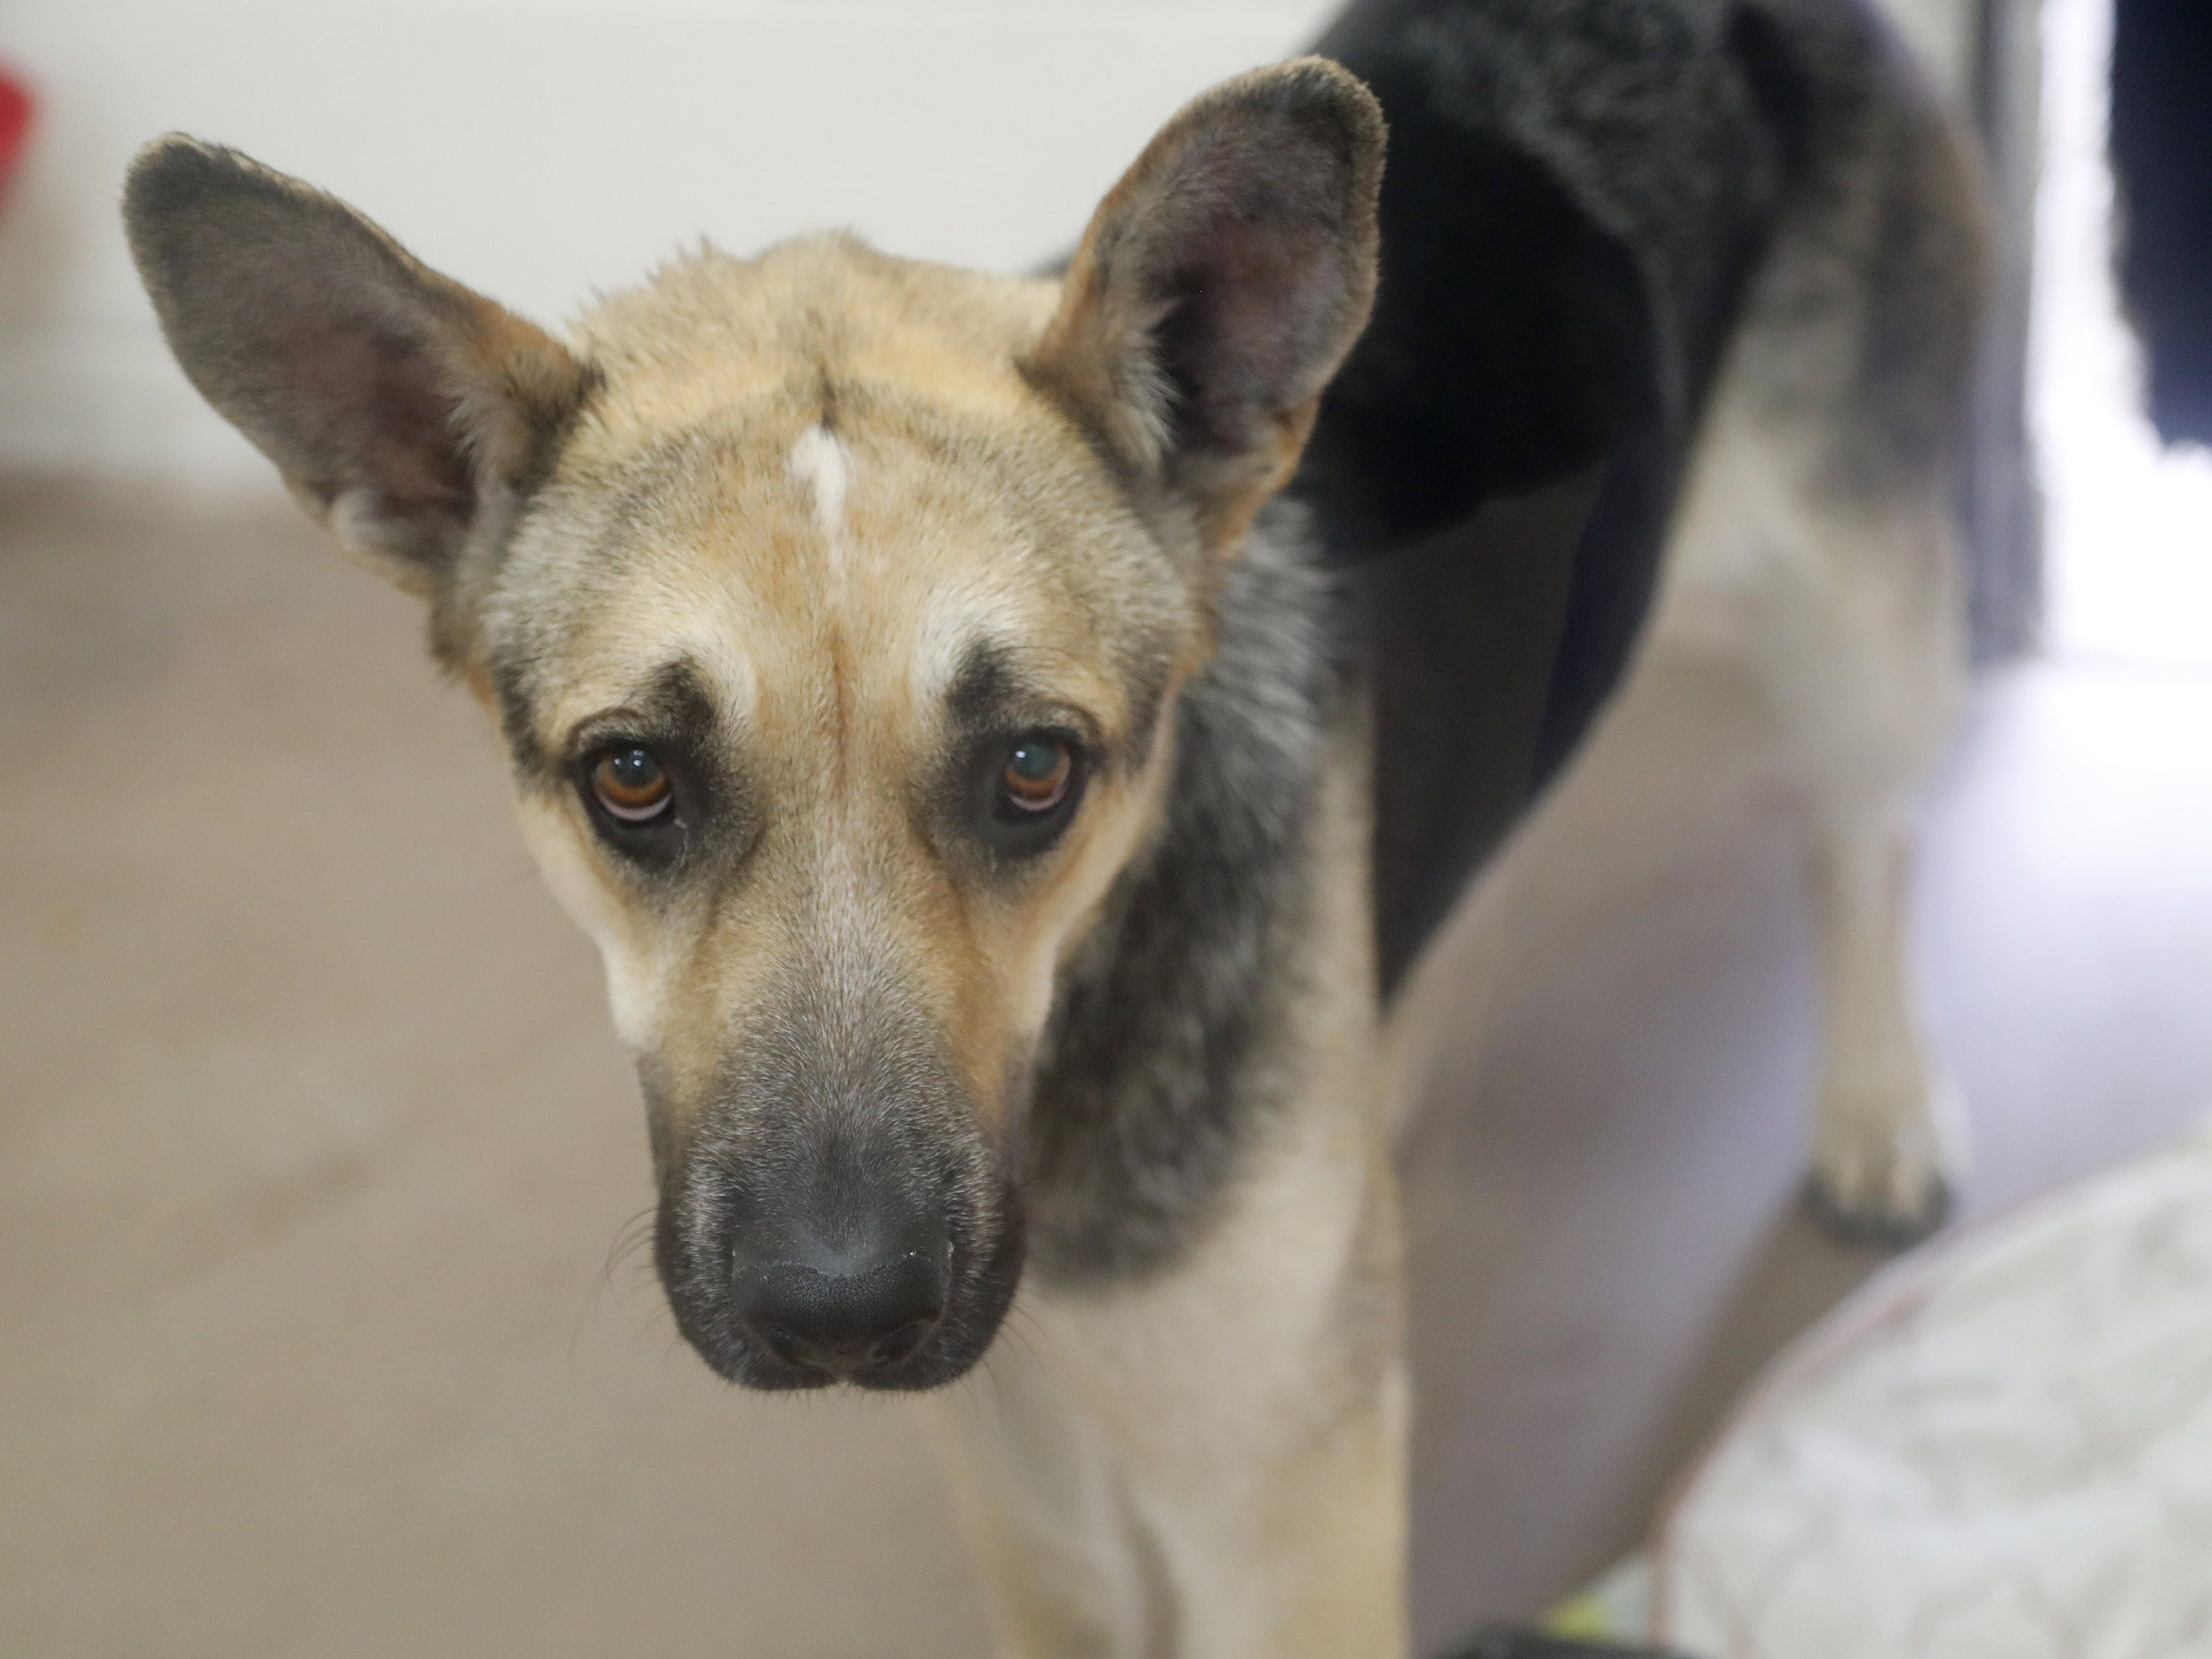 Luna waits to be adopted at the Arizona Humane Society in Phoenix on April 1, 2019. More than 8,000 dogs and cats have been surrendered in Maricopa County since the start of the year.